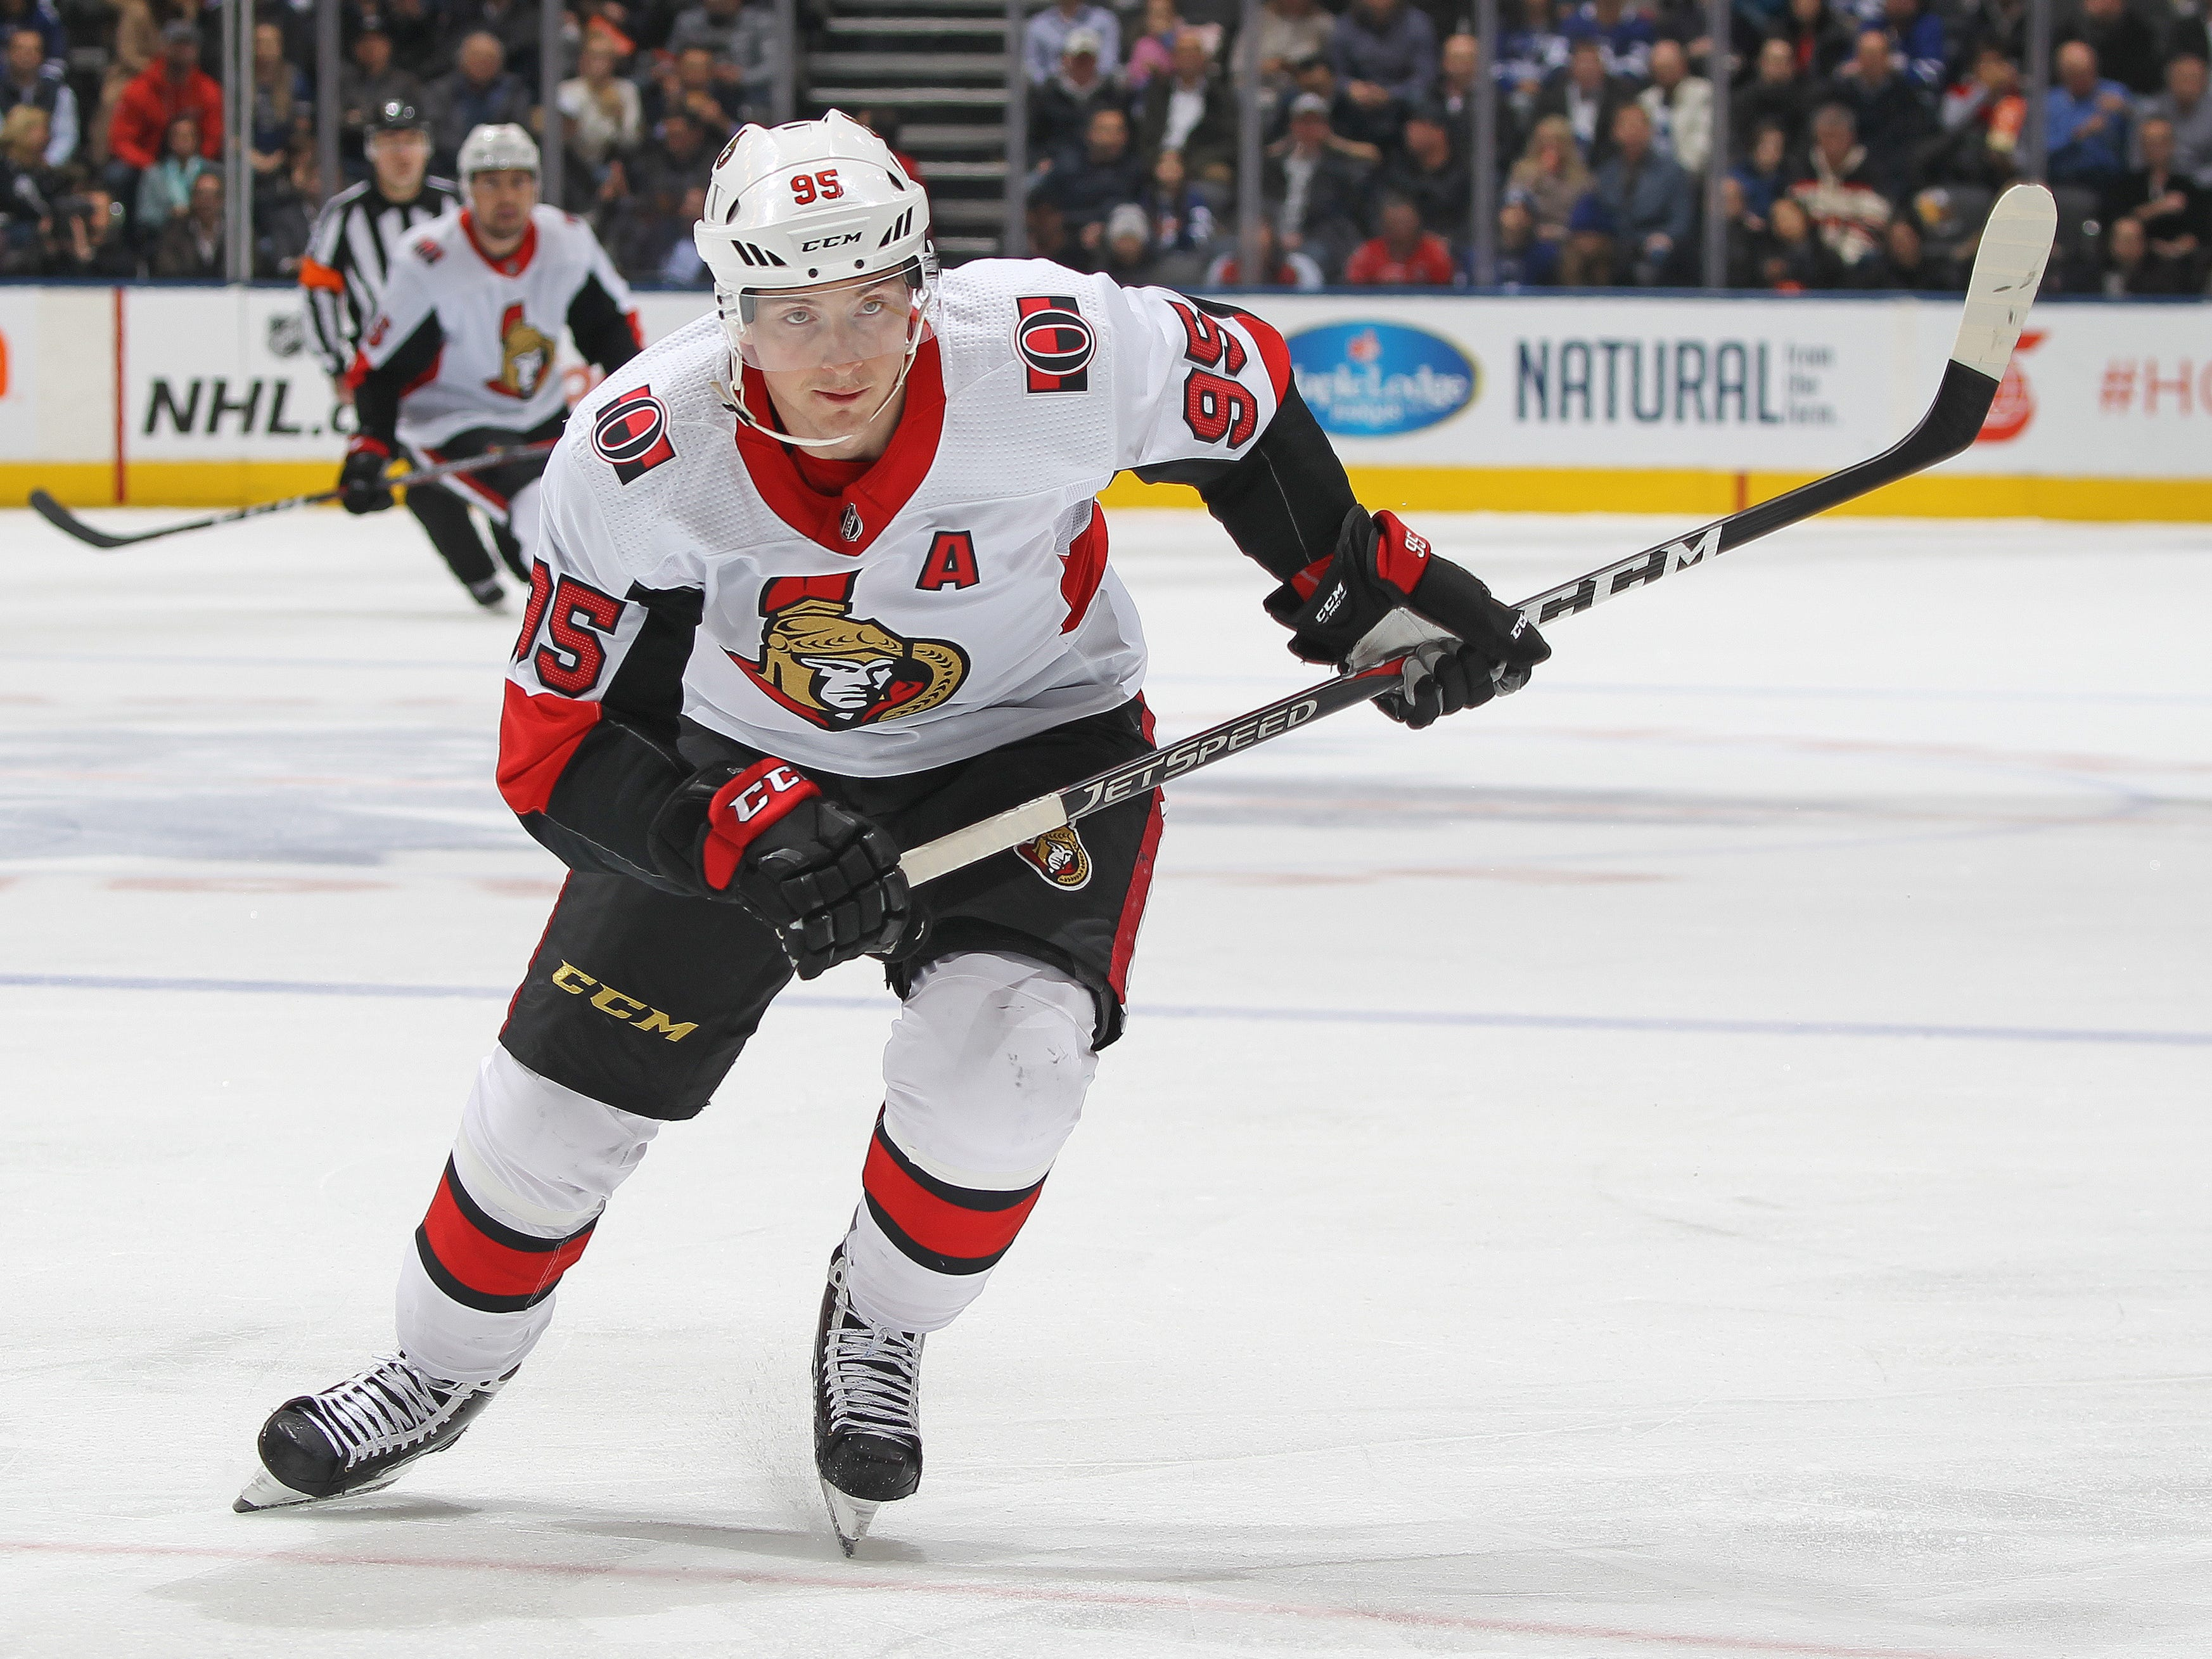 3. Matt Duchene, C, Ottawa: The Senators gave up what is turning out to be the No. 1 overall pick in June's draft to Colorado for Duchene. And if they don't re-sign him, they'll trade him. That is painful.